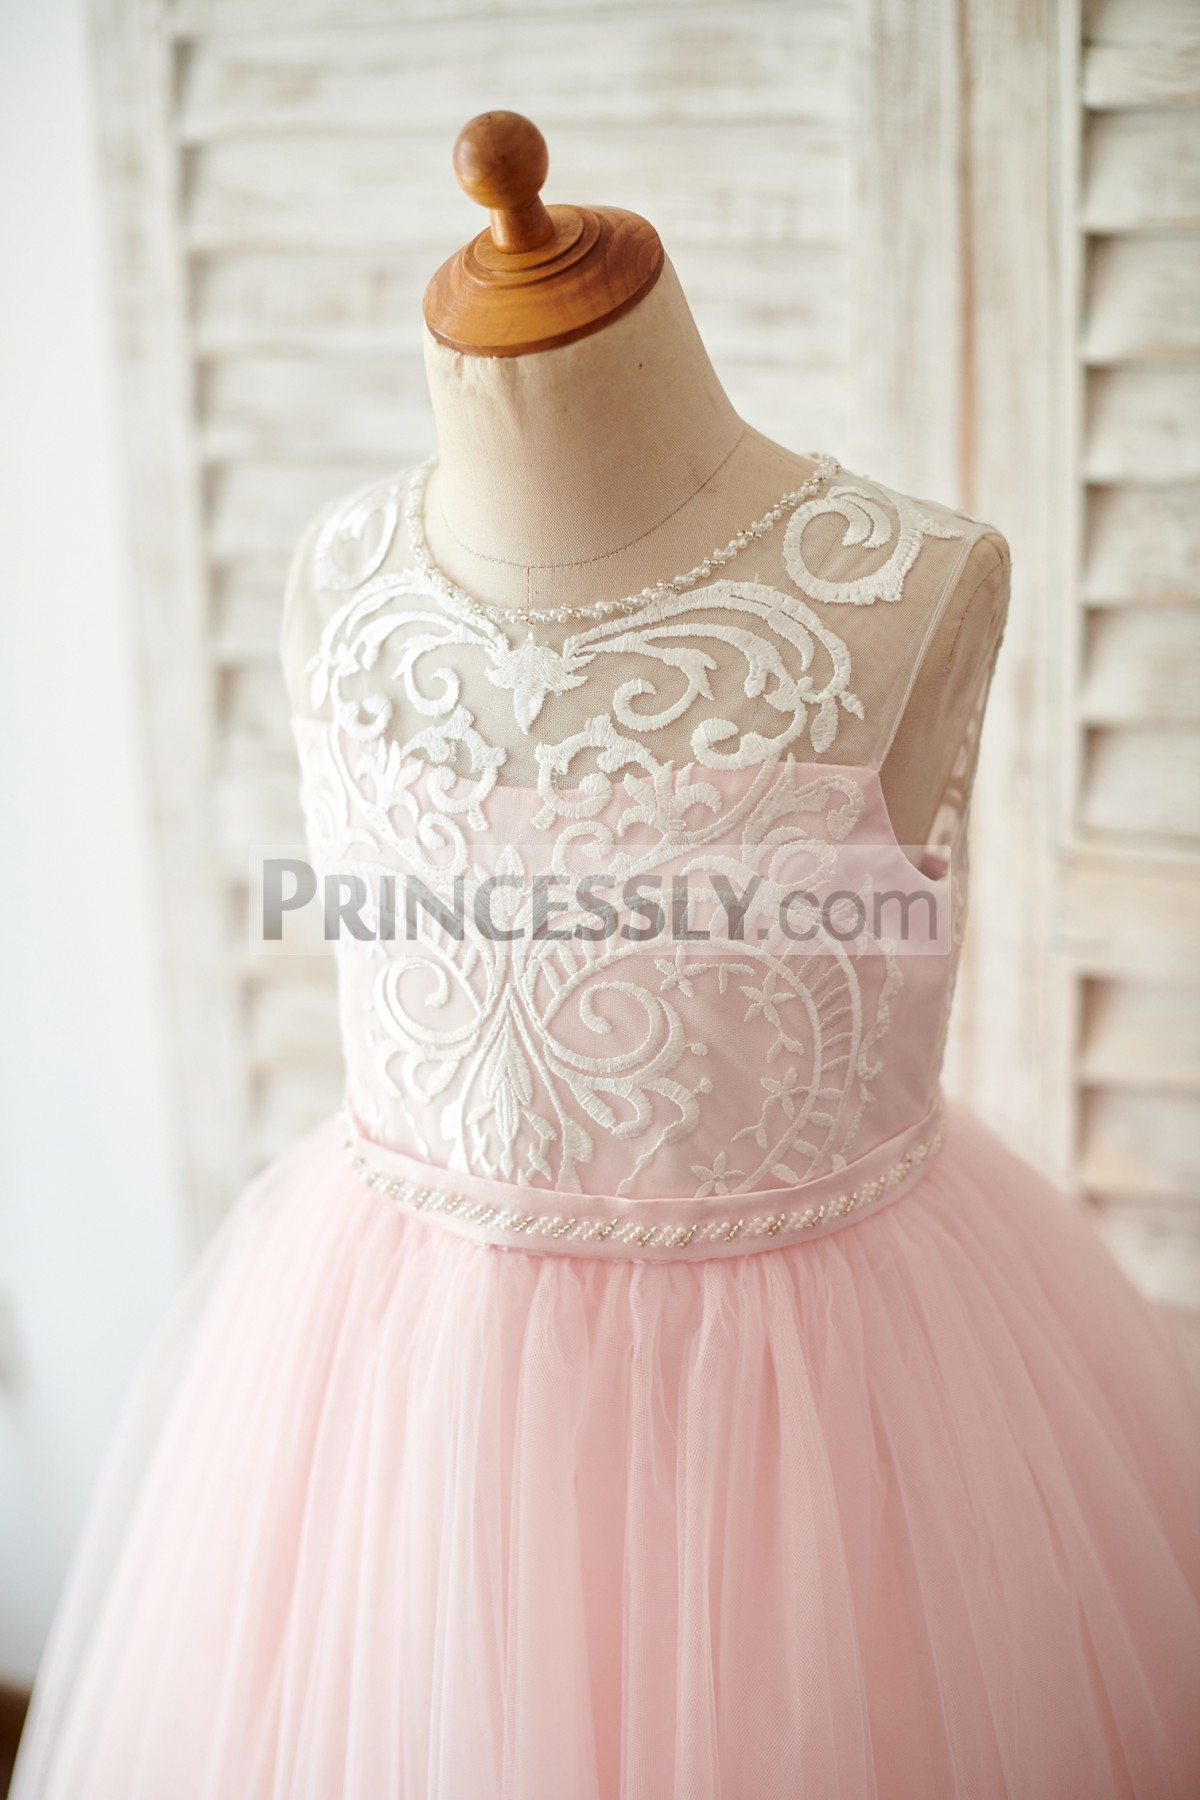 Beaded Jewel Neck Sleeveless Lace Overlay Bodice with Beaded Belt